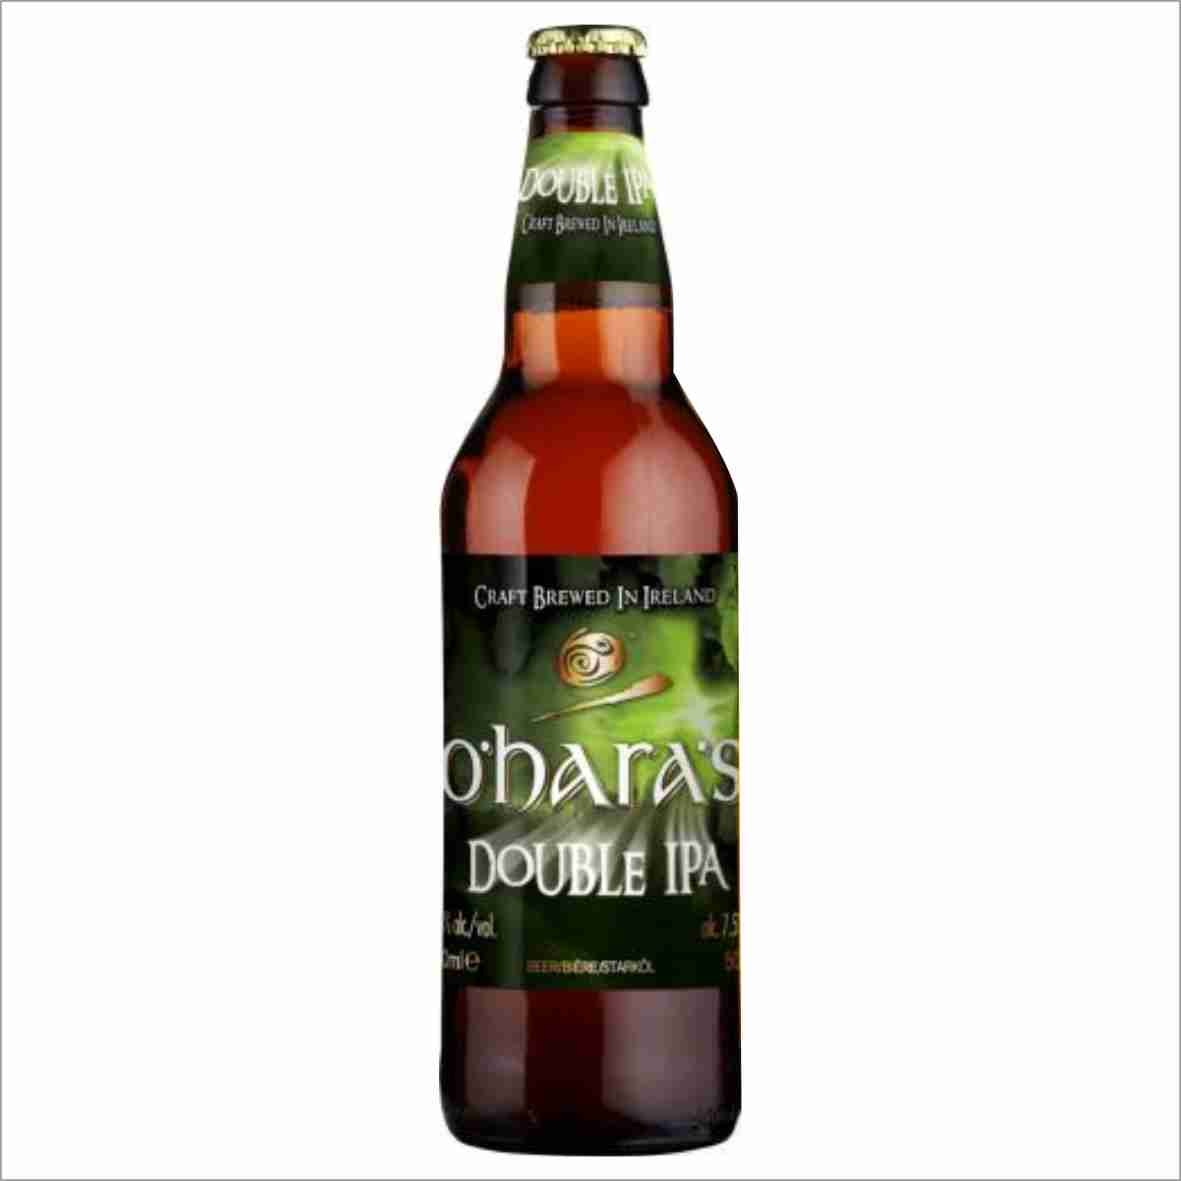 oharas_double_ipa